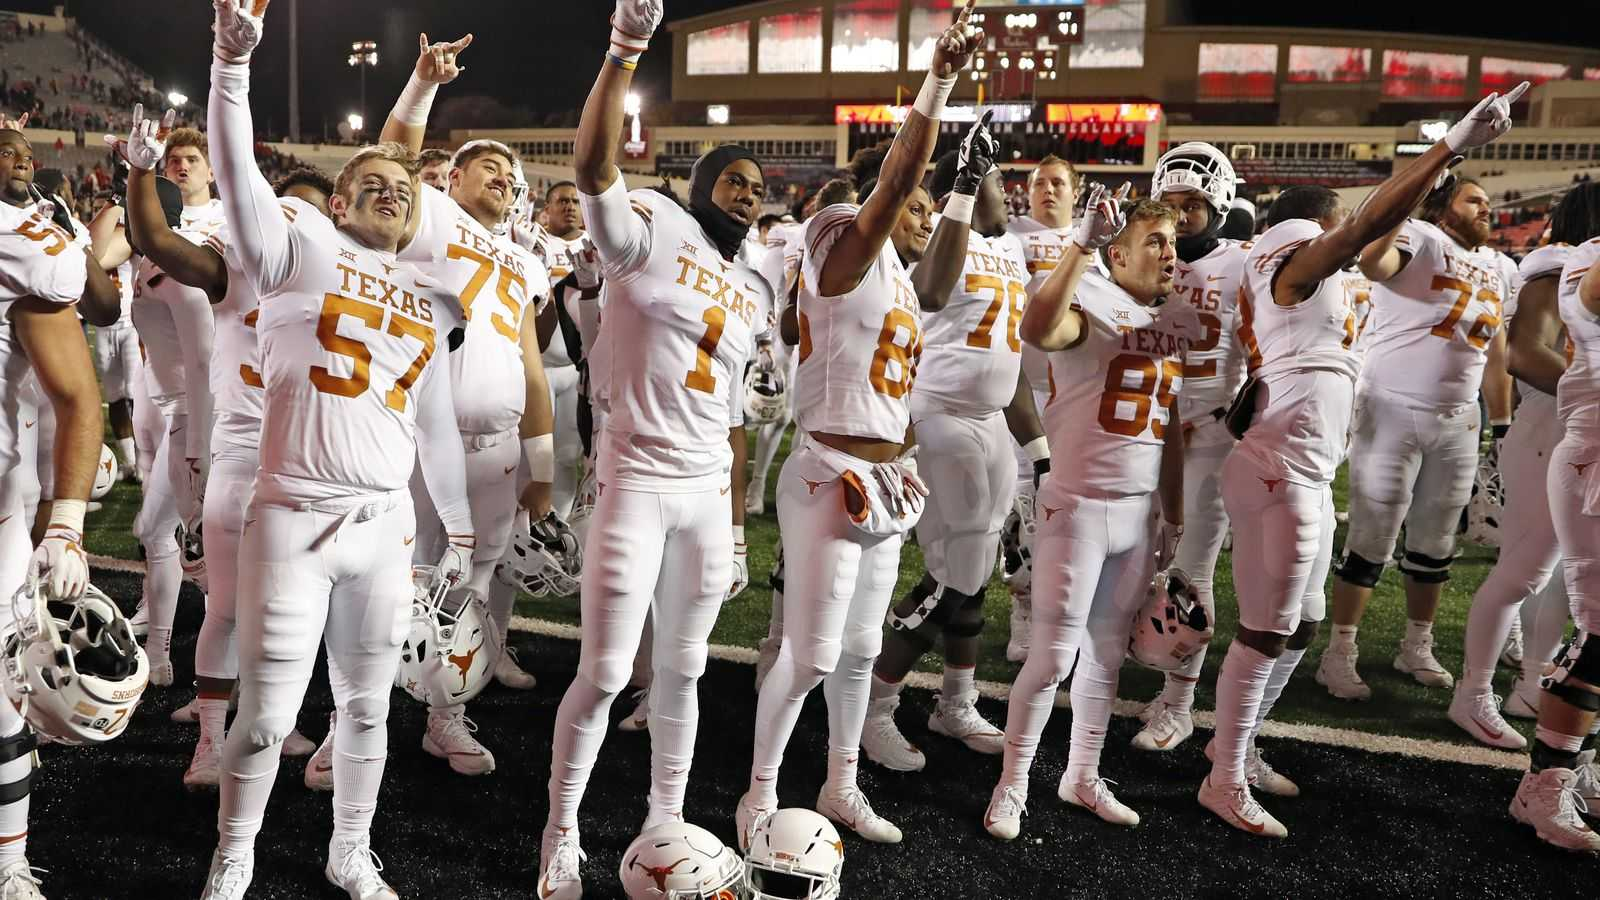 The Texas Longhorns and Tom Herman are in Trouble